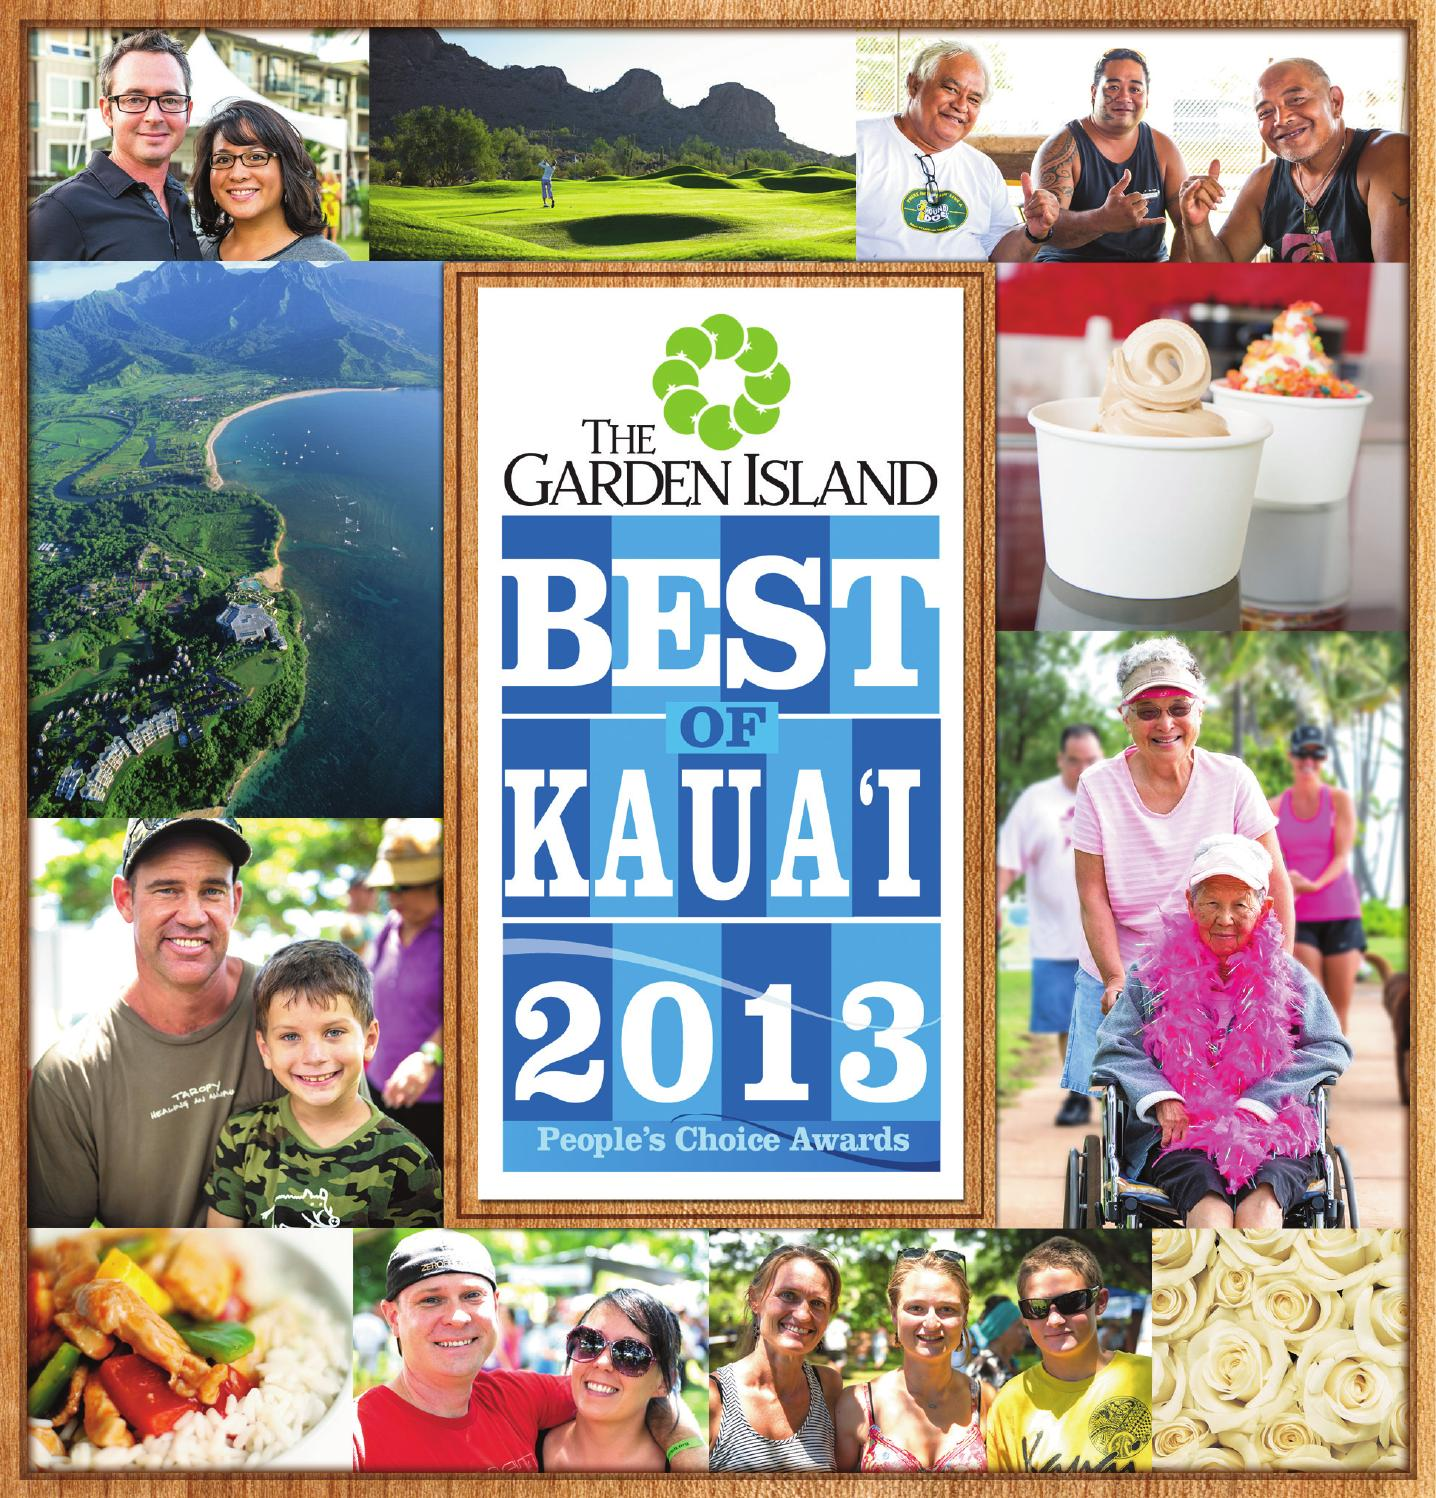 Best Of Kauai 2013 By The Garden Island Newspaper Issuu